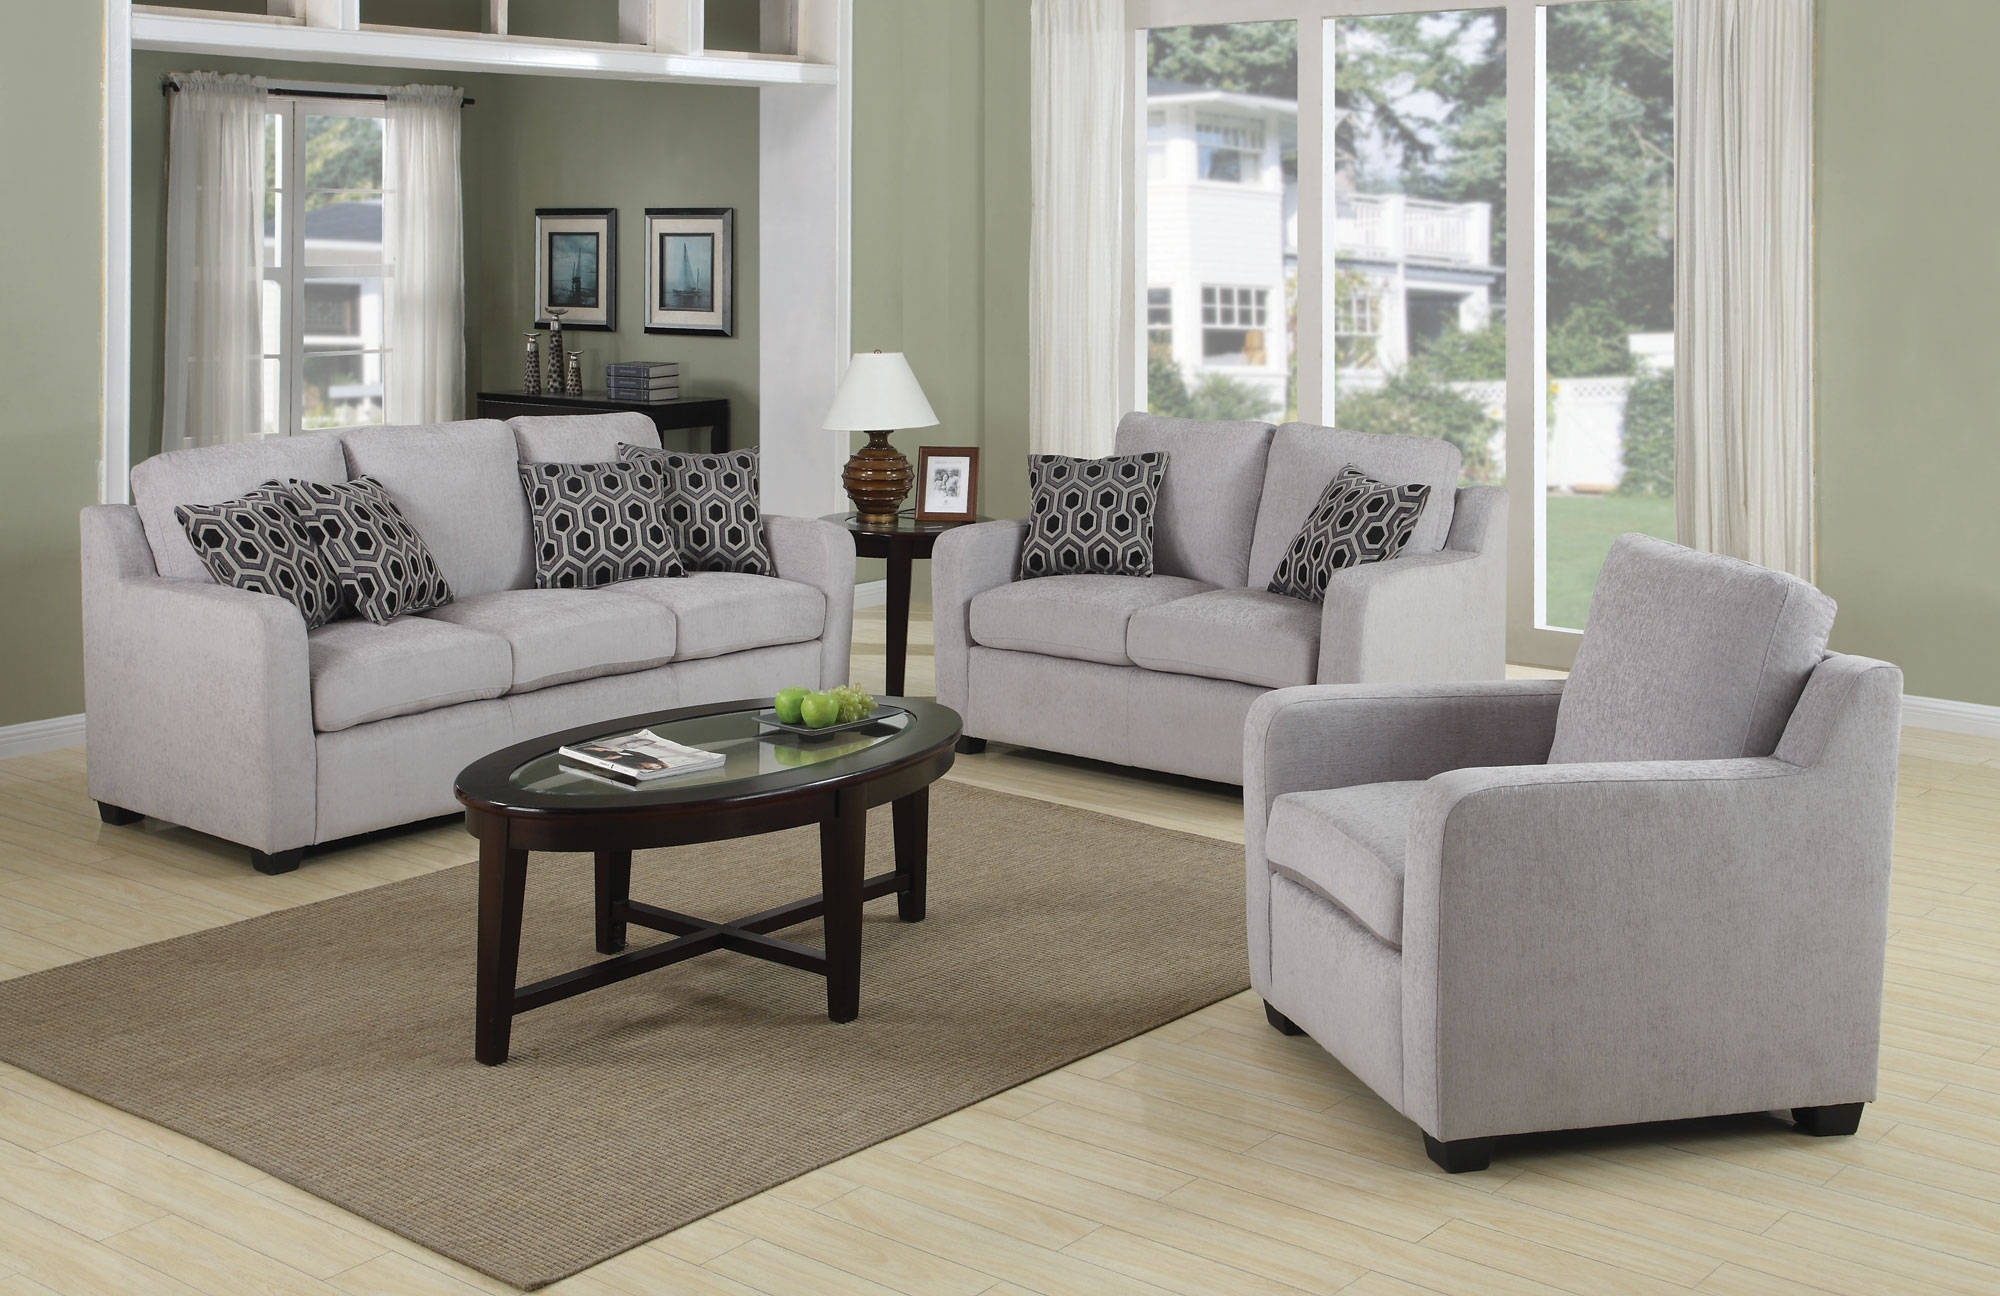 Newest Living Room Sofa Chairs With Regard To Furniture: Amazing Set Of Chairs For Living Room 3 Piece Living (View 8 of 15)